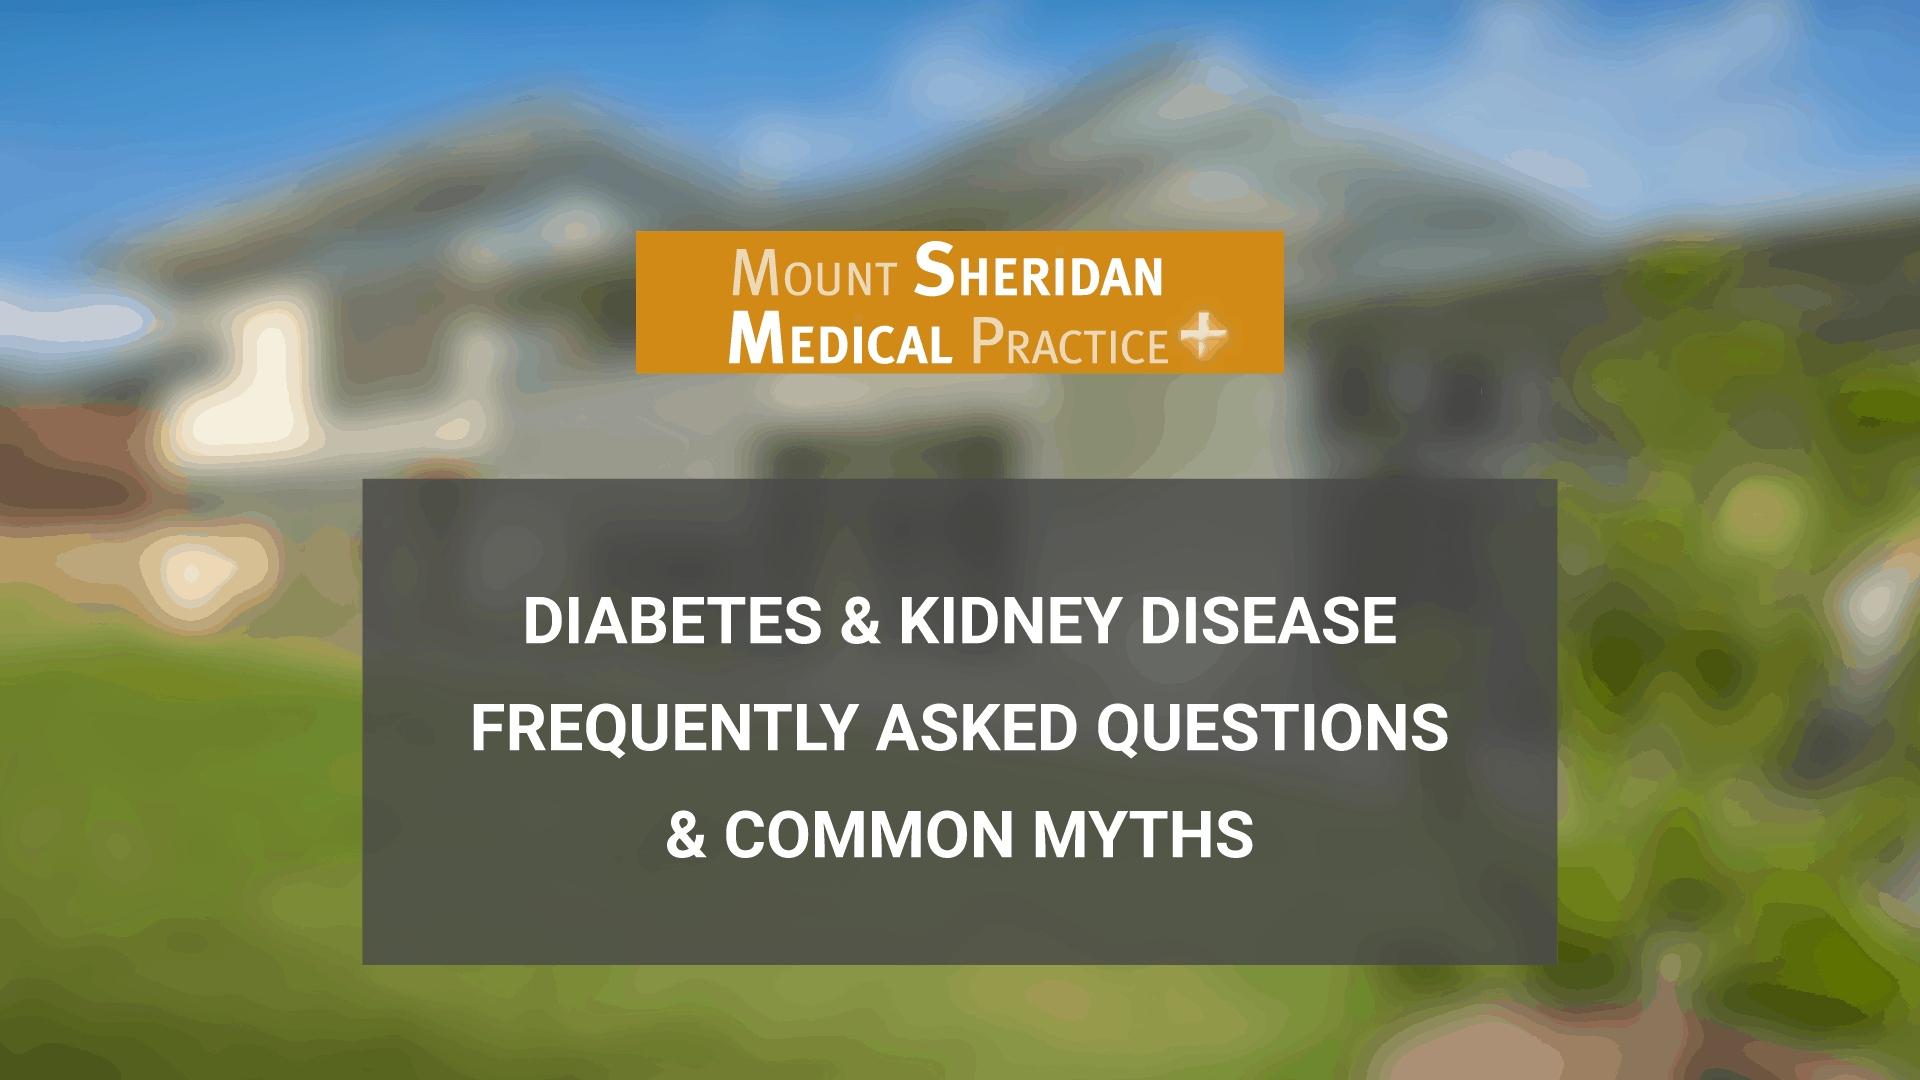 Diabetes & Kidney Disease Frequently Asked Questions